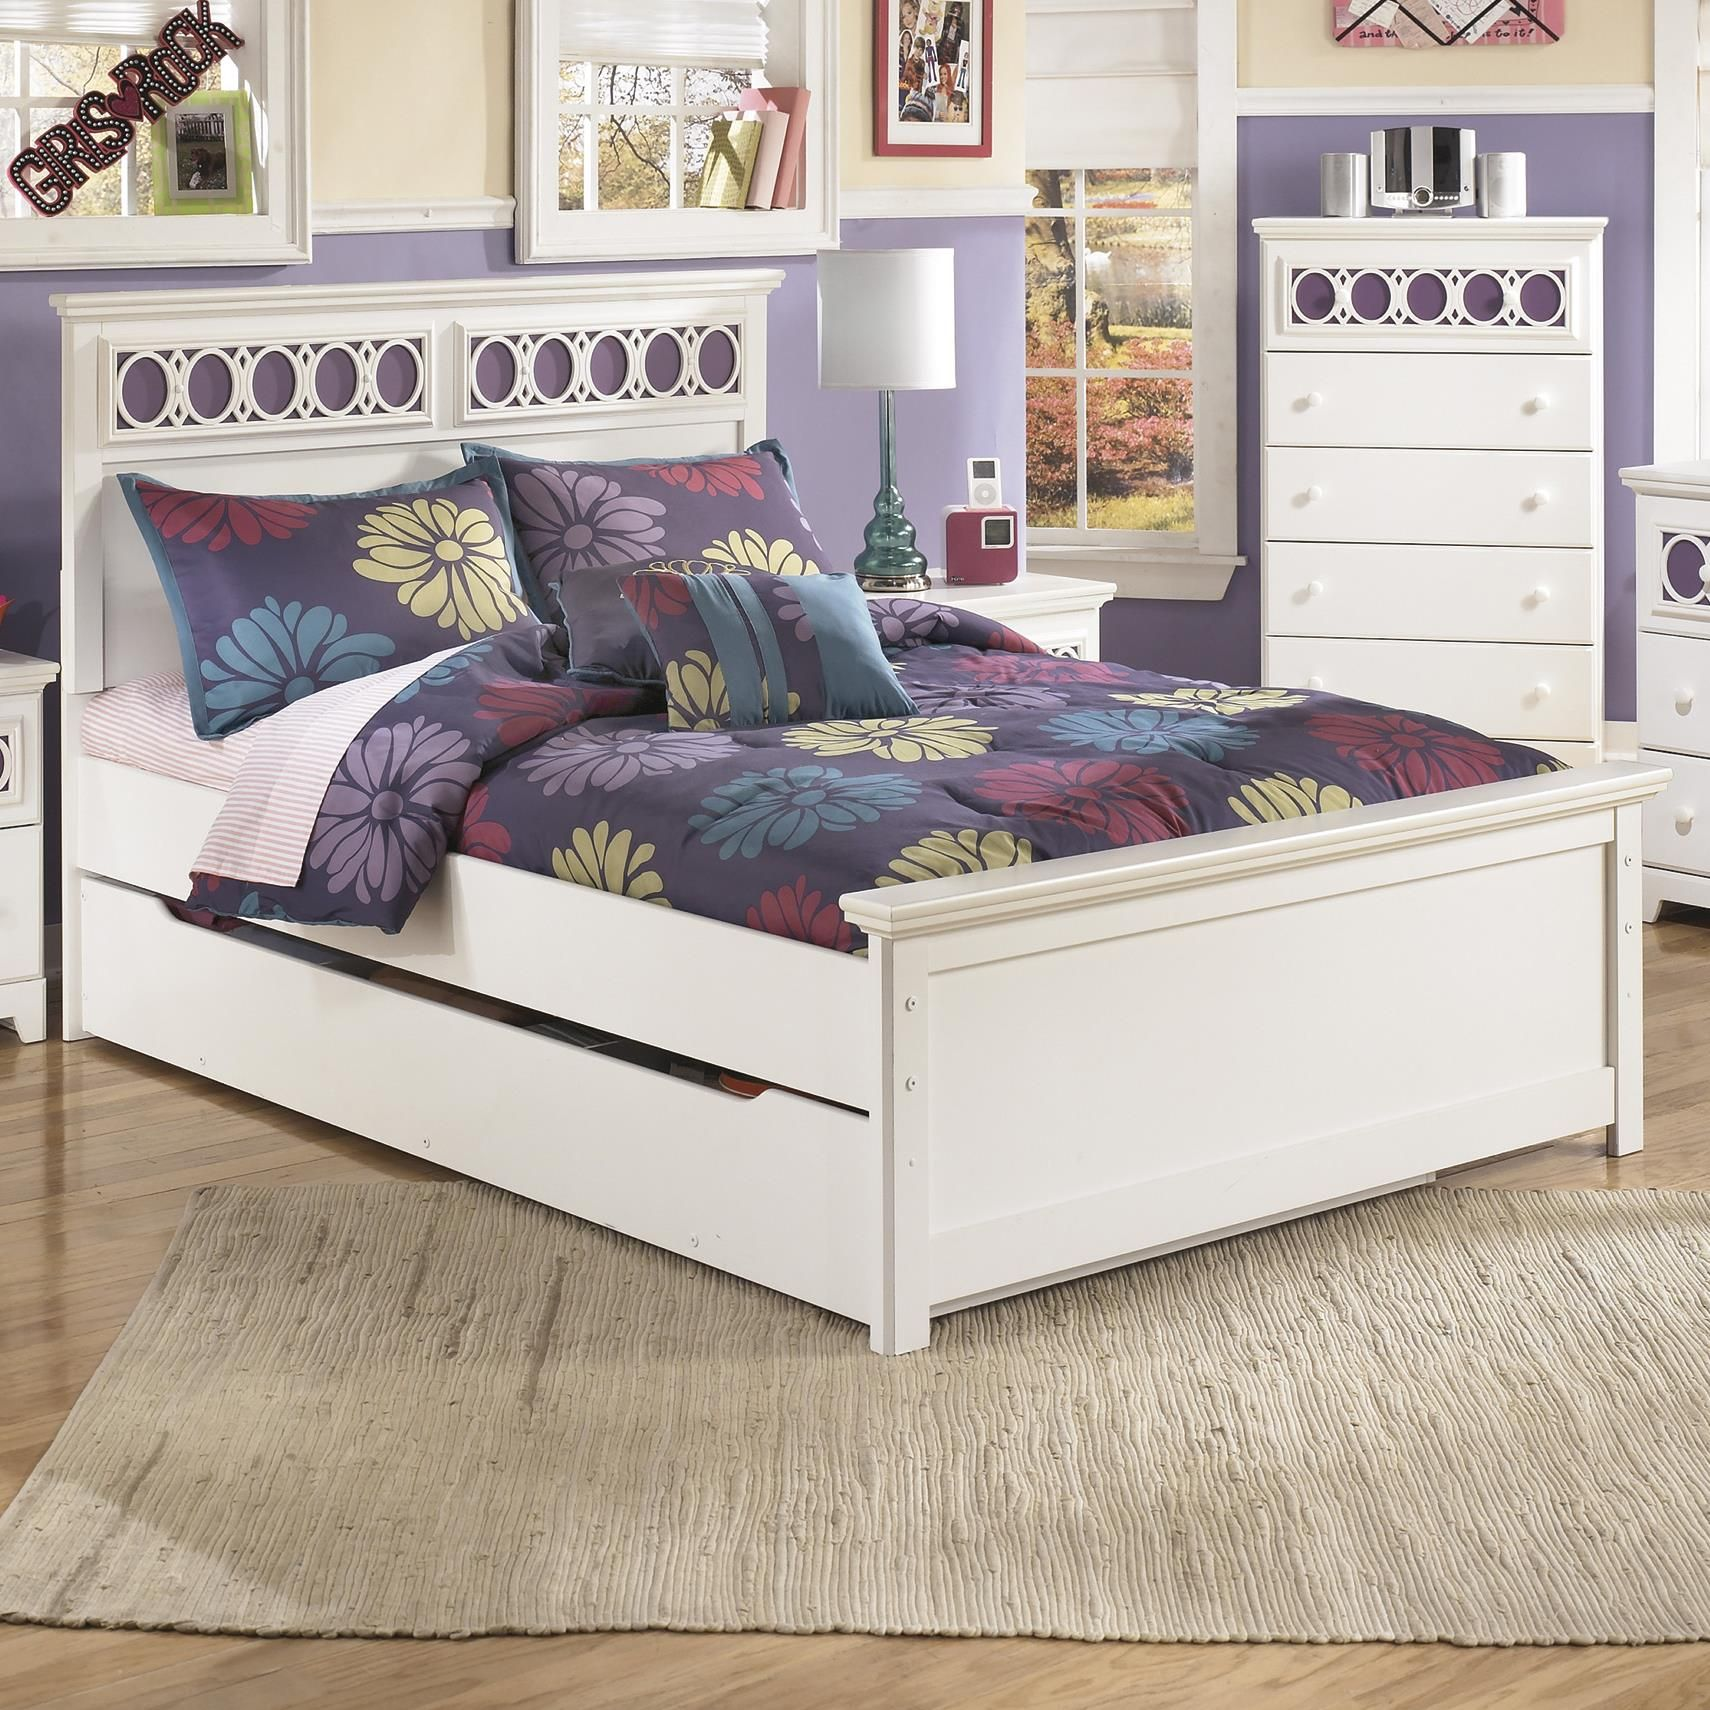 Zayley Full Platform Bed with Trundle Storage Box by